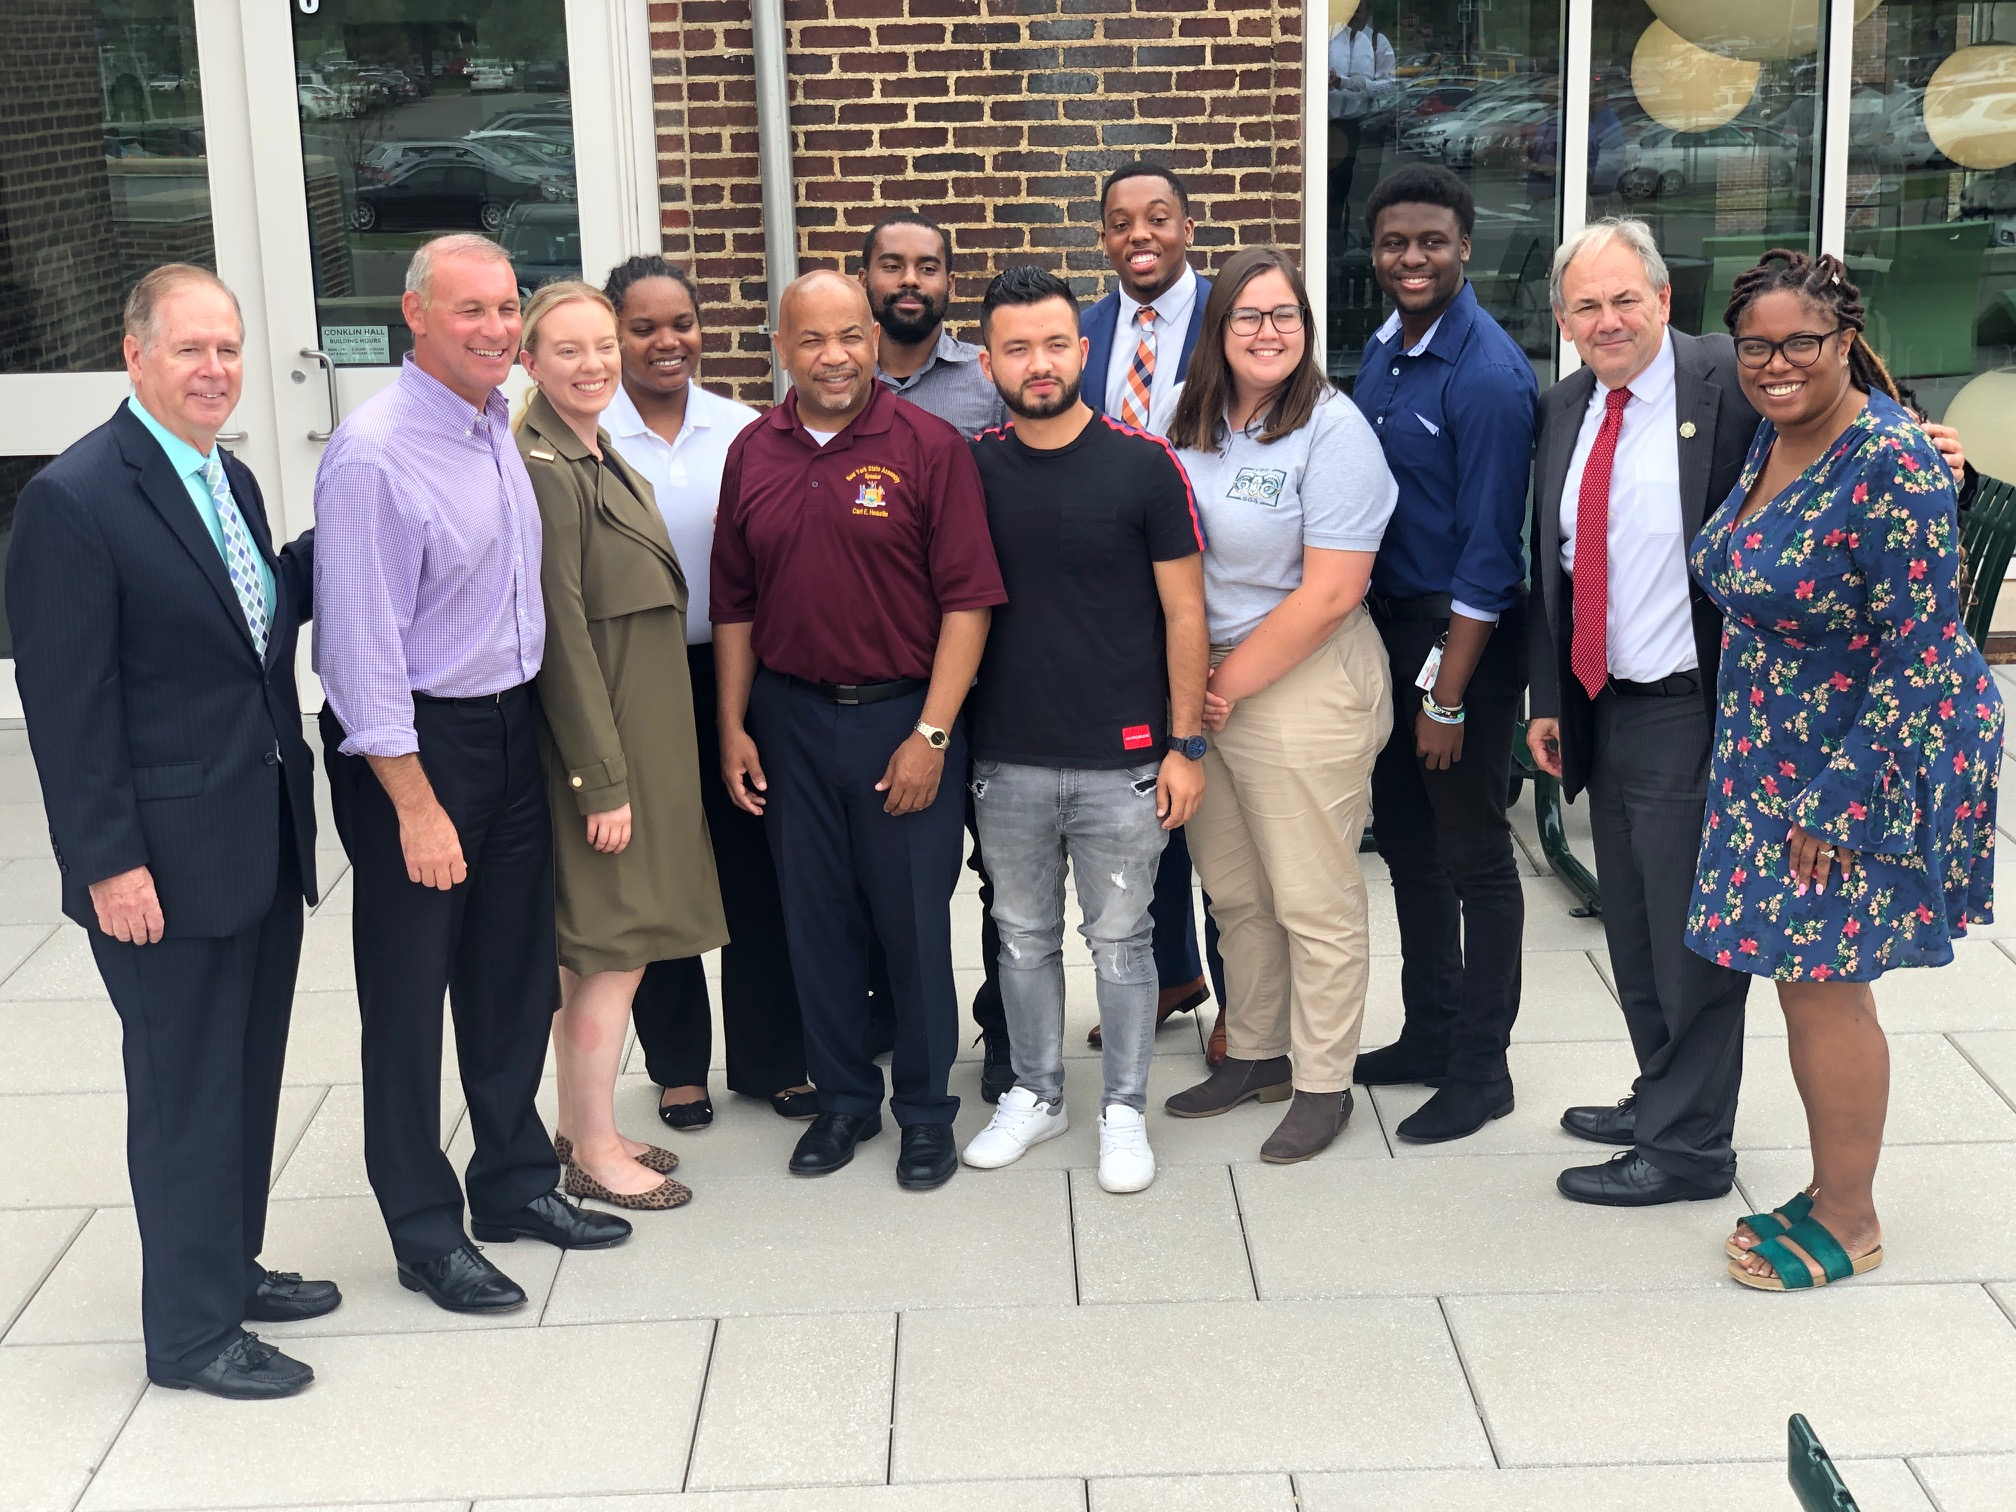 Pictured with Speaker Heastie in the third photo at Farmingdale State College is (from left to right): Farmingdale State College Vice President for Institutional Advancement Patrick Calabria, Assemblymember Steve Stern, members of the Student Senate, Farm